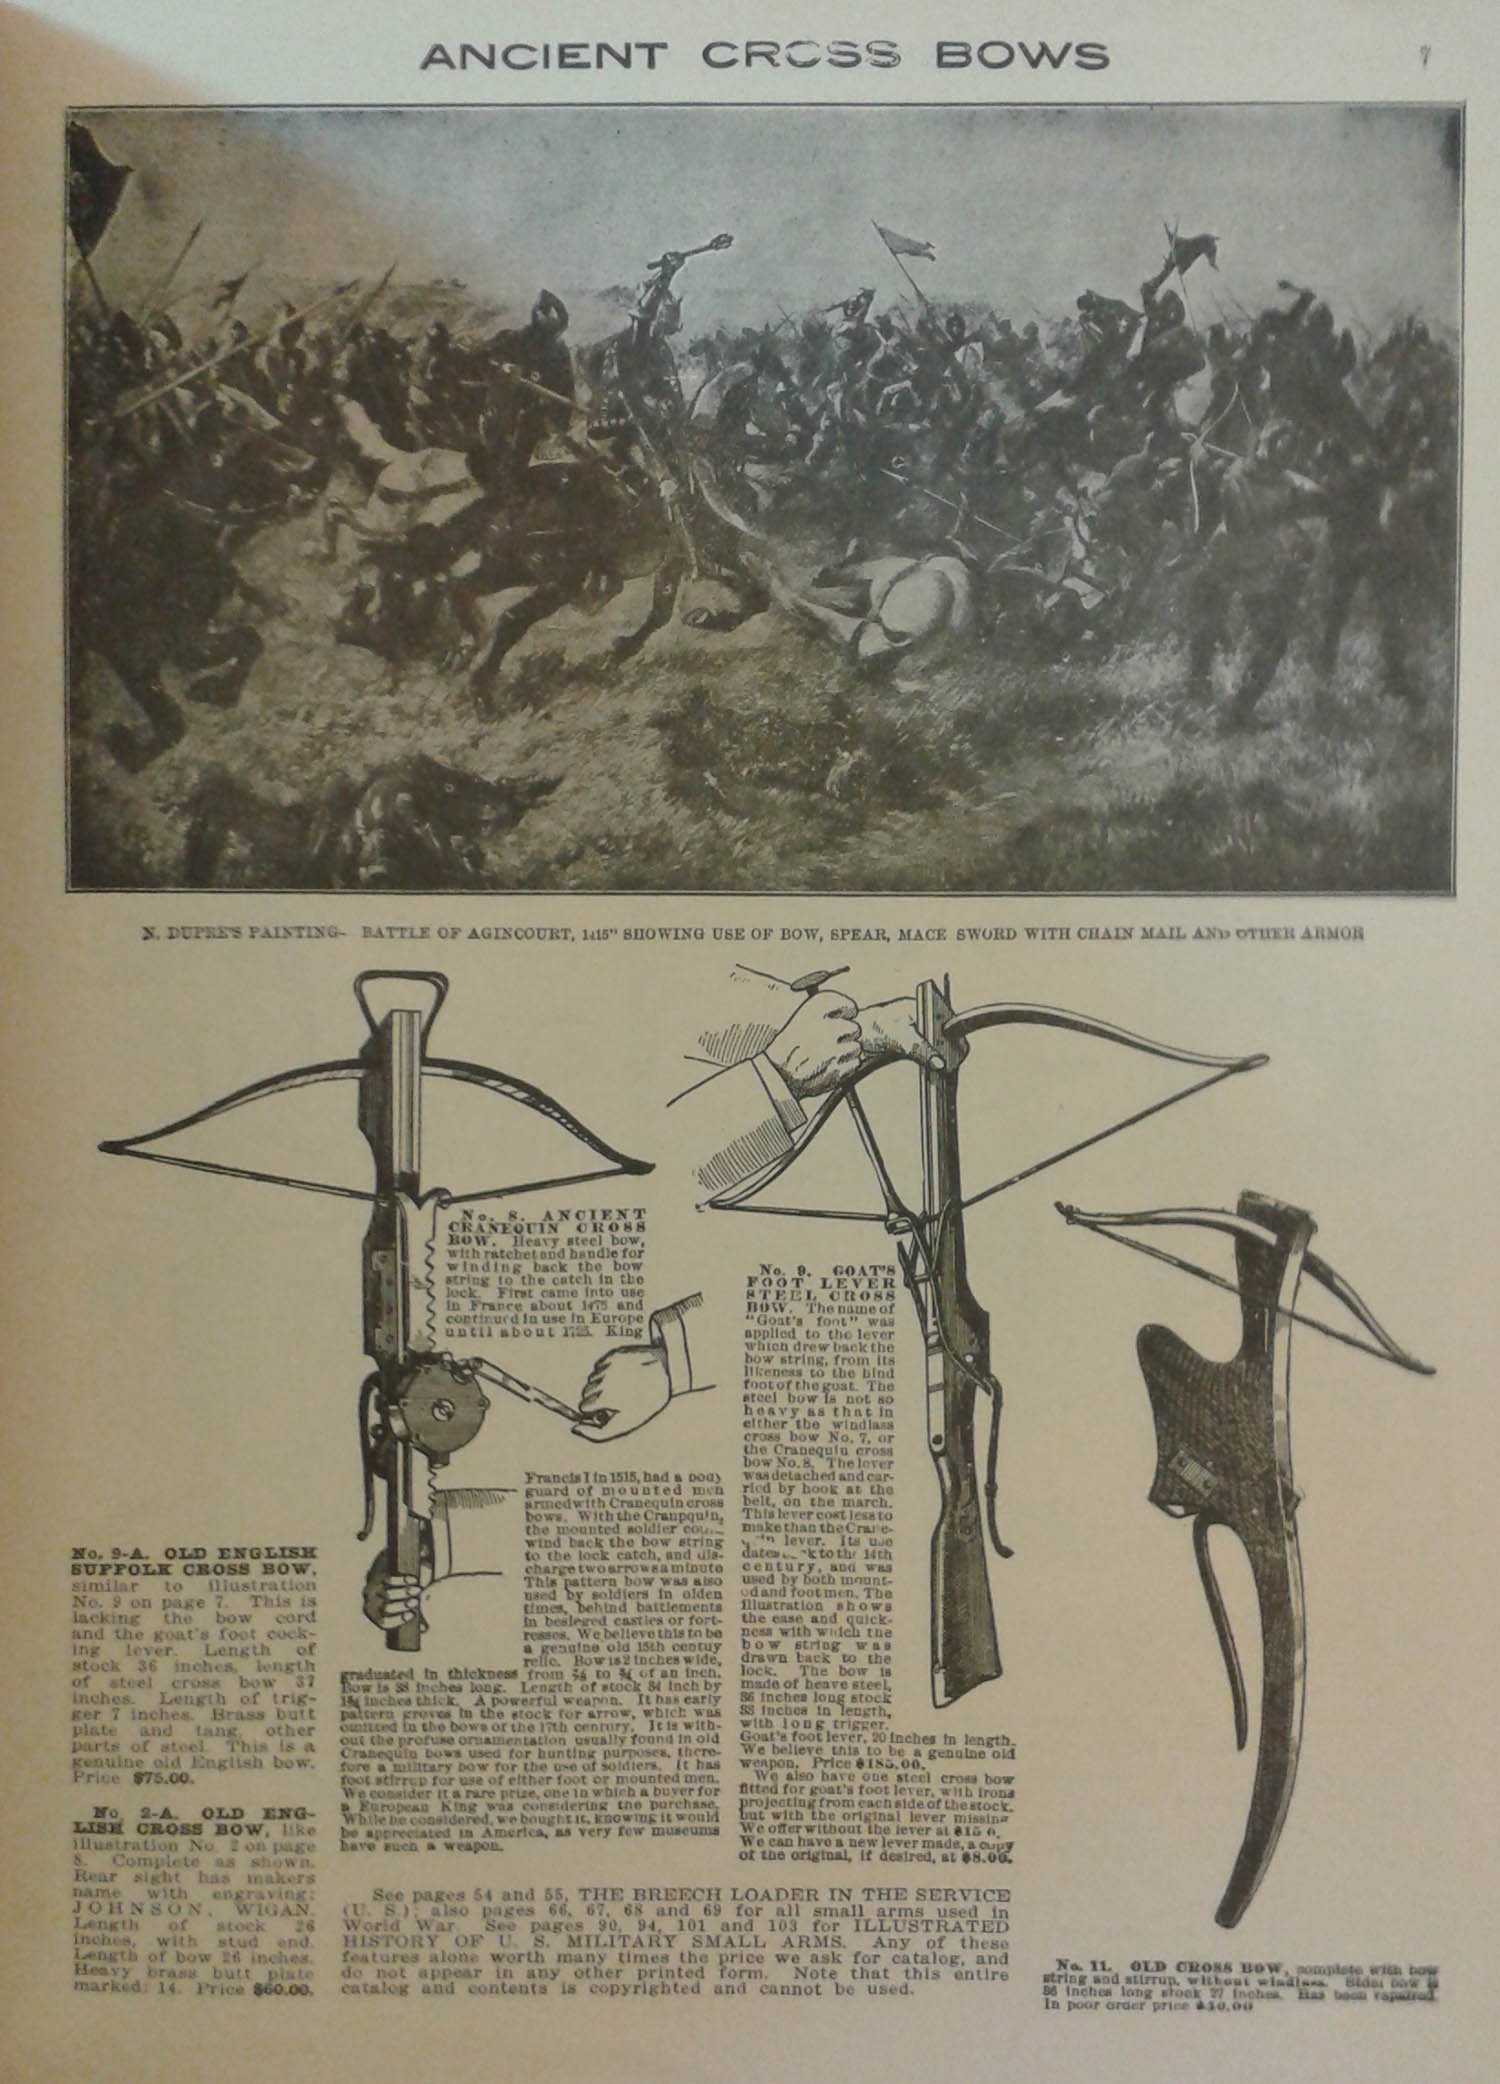 bannerman_catalog_crossbows